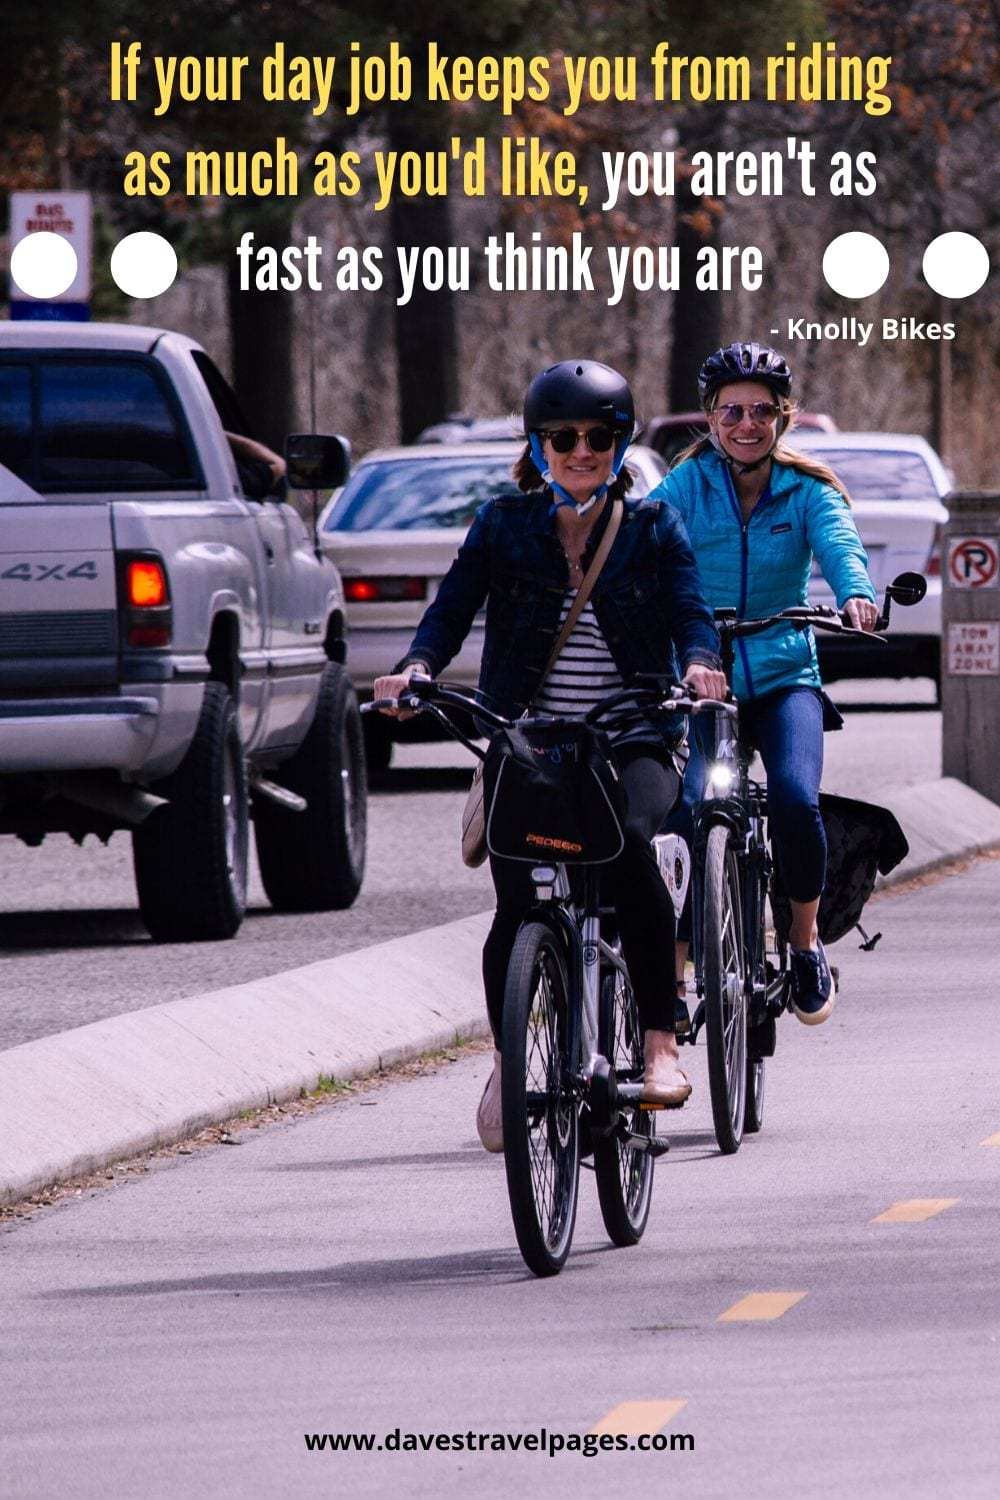 """Funny bicycling quote - If your day job keeps you from riding as much as you'd like, you aren't as fast as you think you are."""" - Knolly Bikes"""